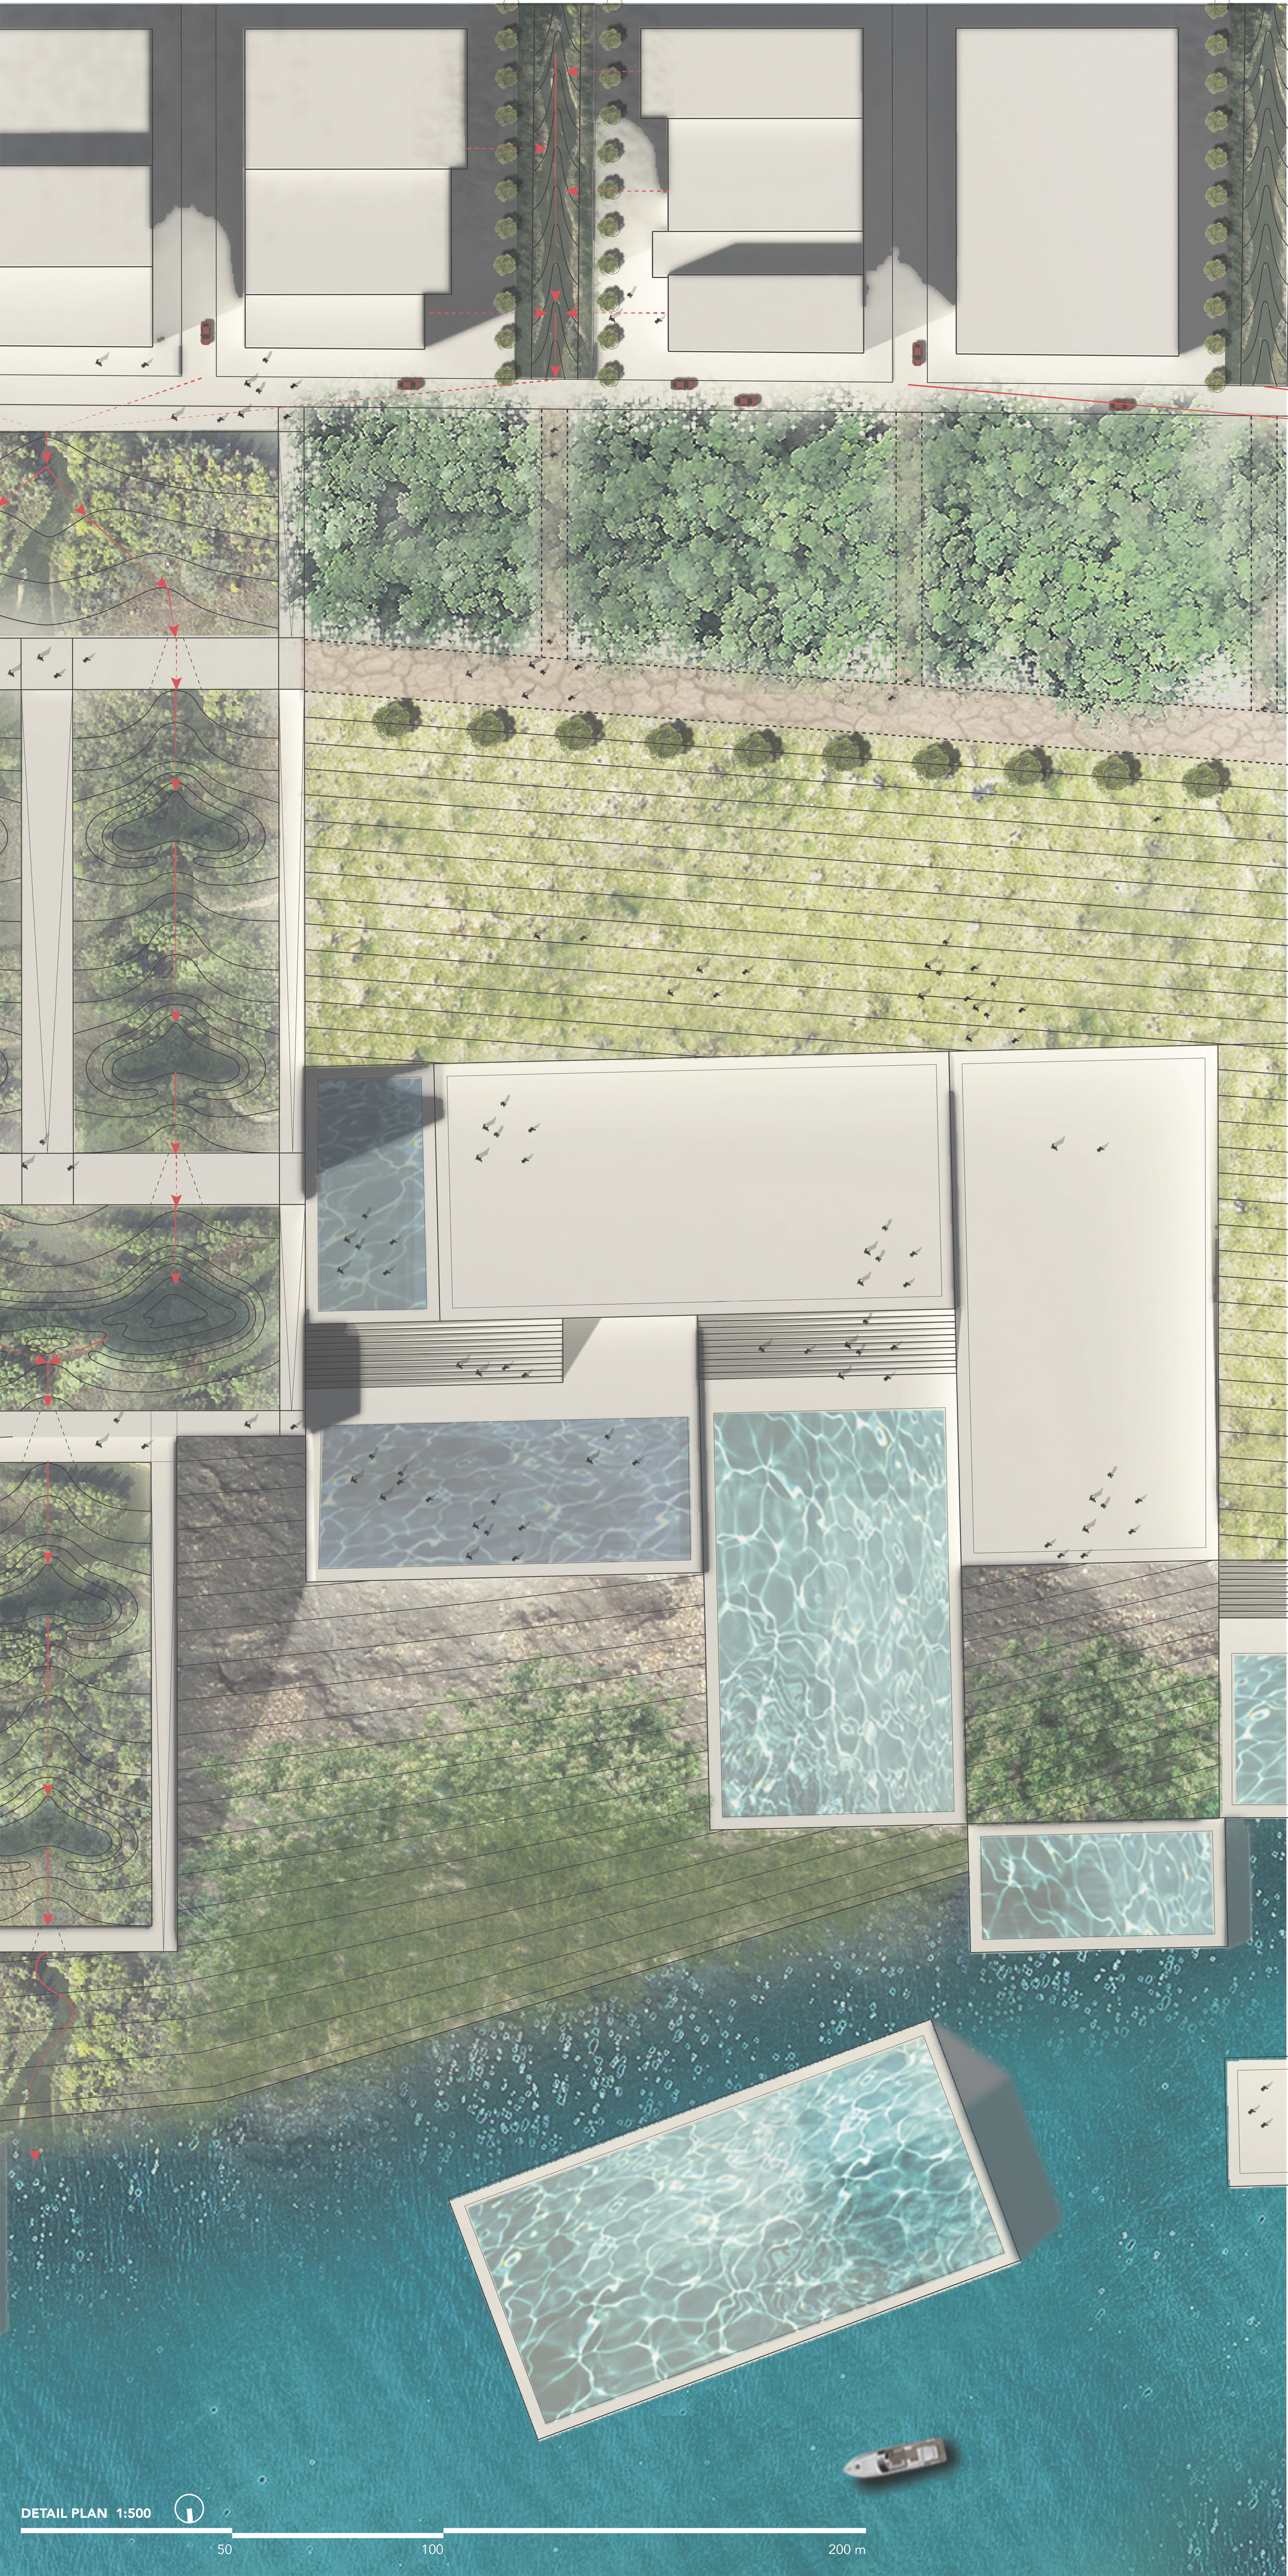 Detail plan showing the modular water programs that can be reconfigured based on specific needs, depending on the season